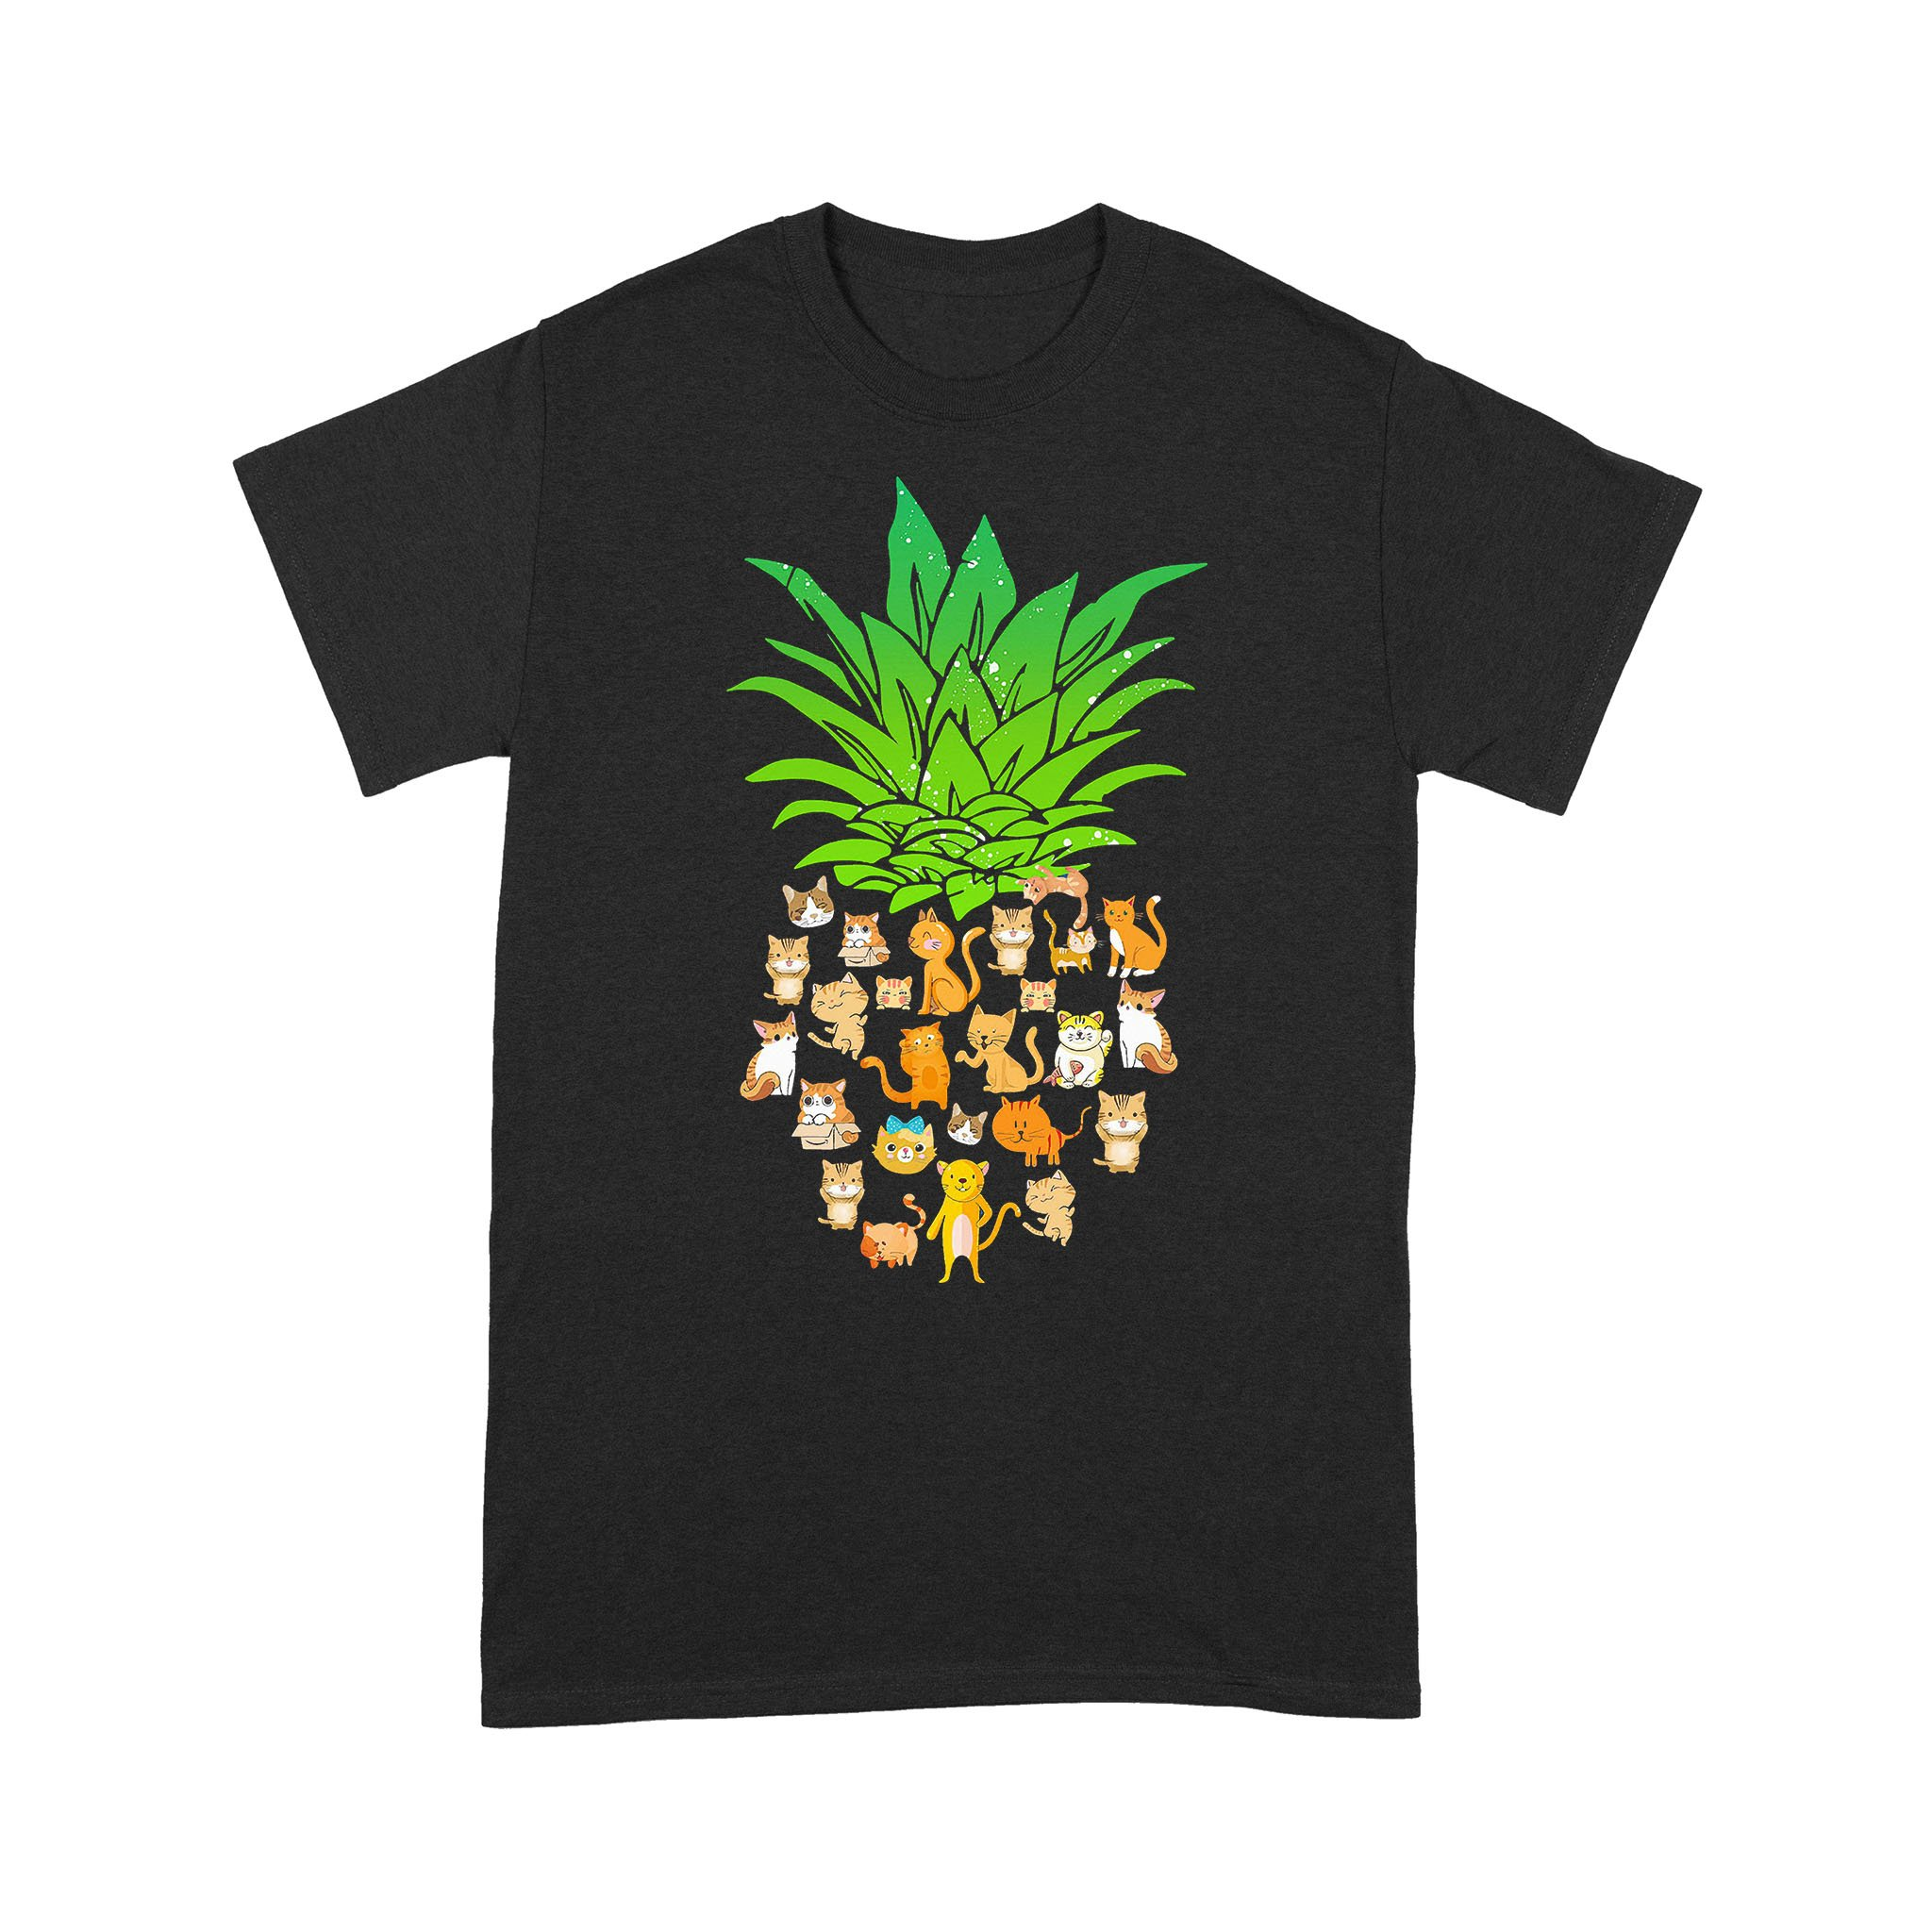 Awesome Pineapple Cats T-shirt